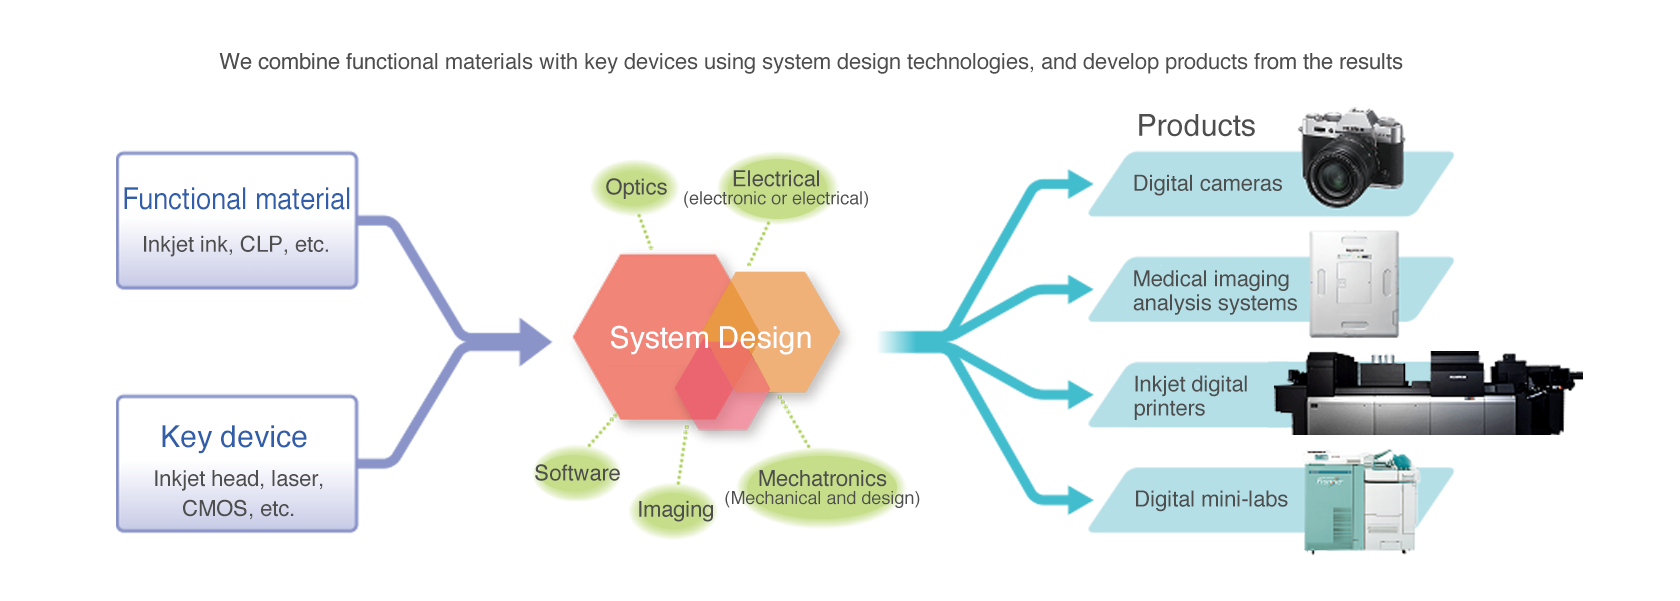 [image] Positioning of system design